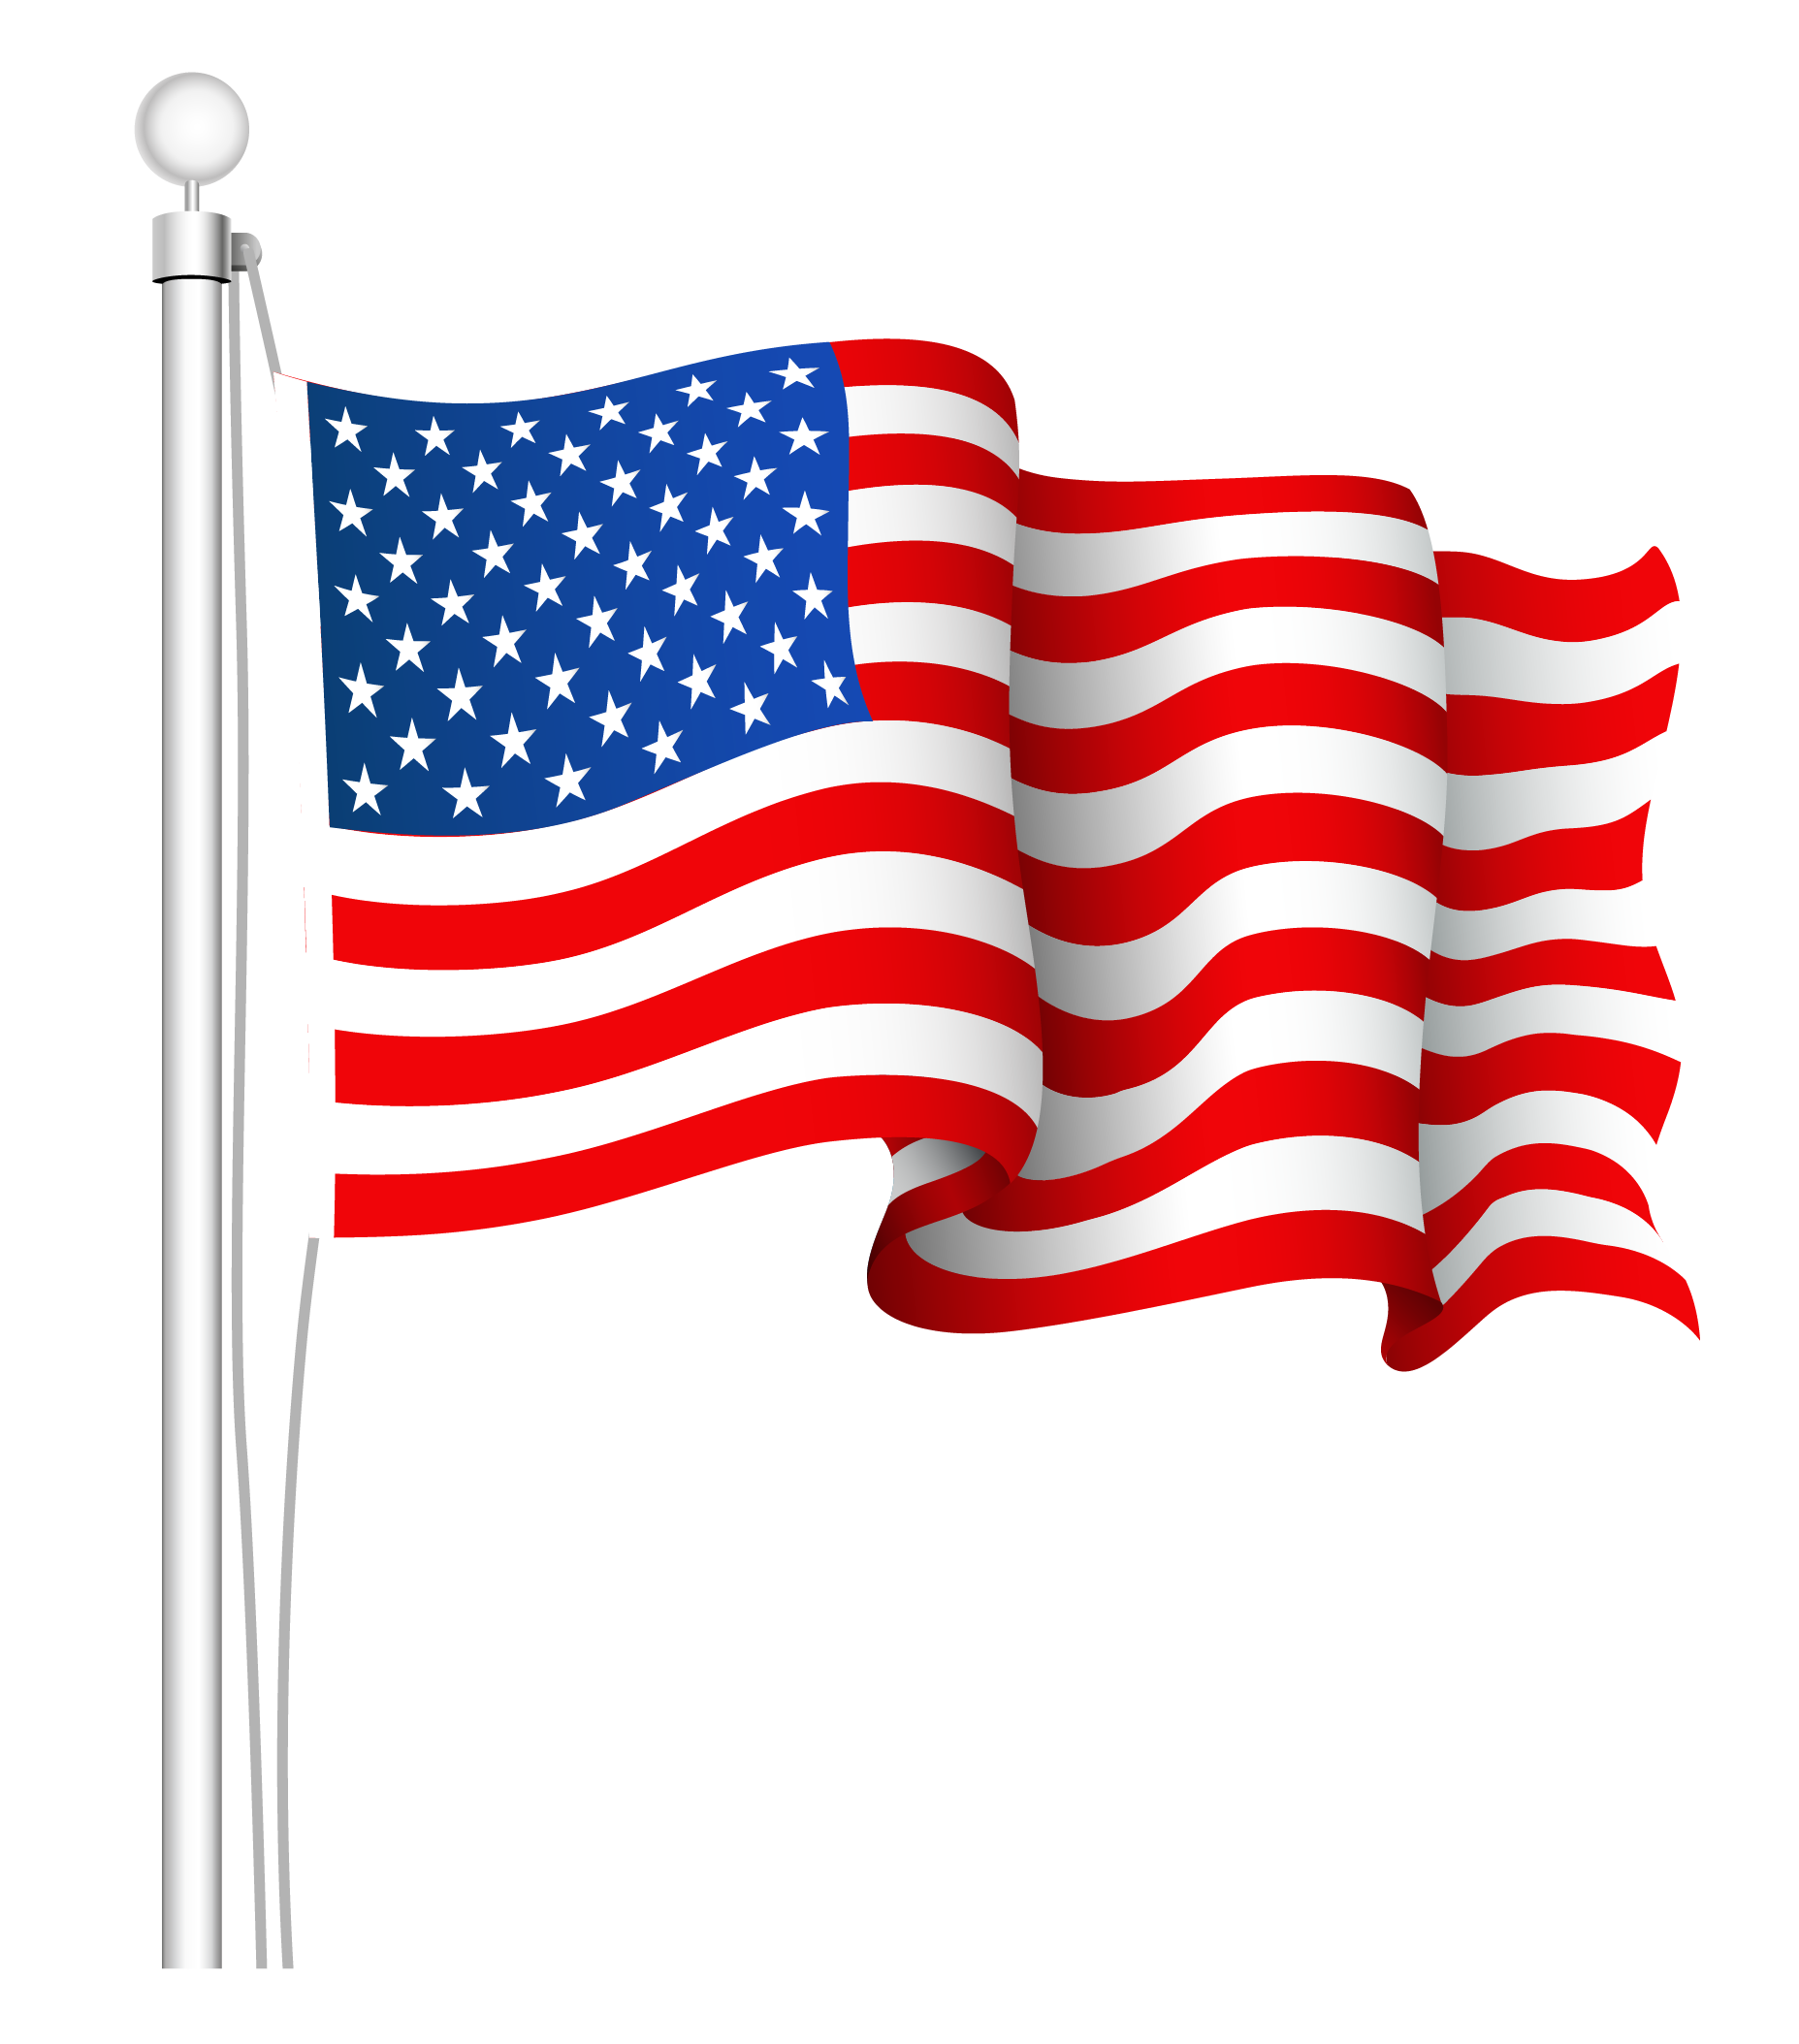 united states clipart american